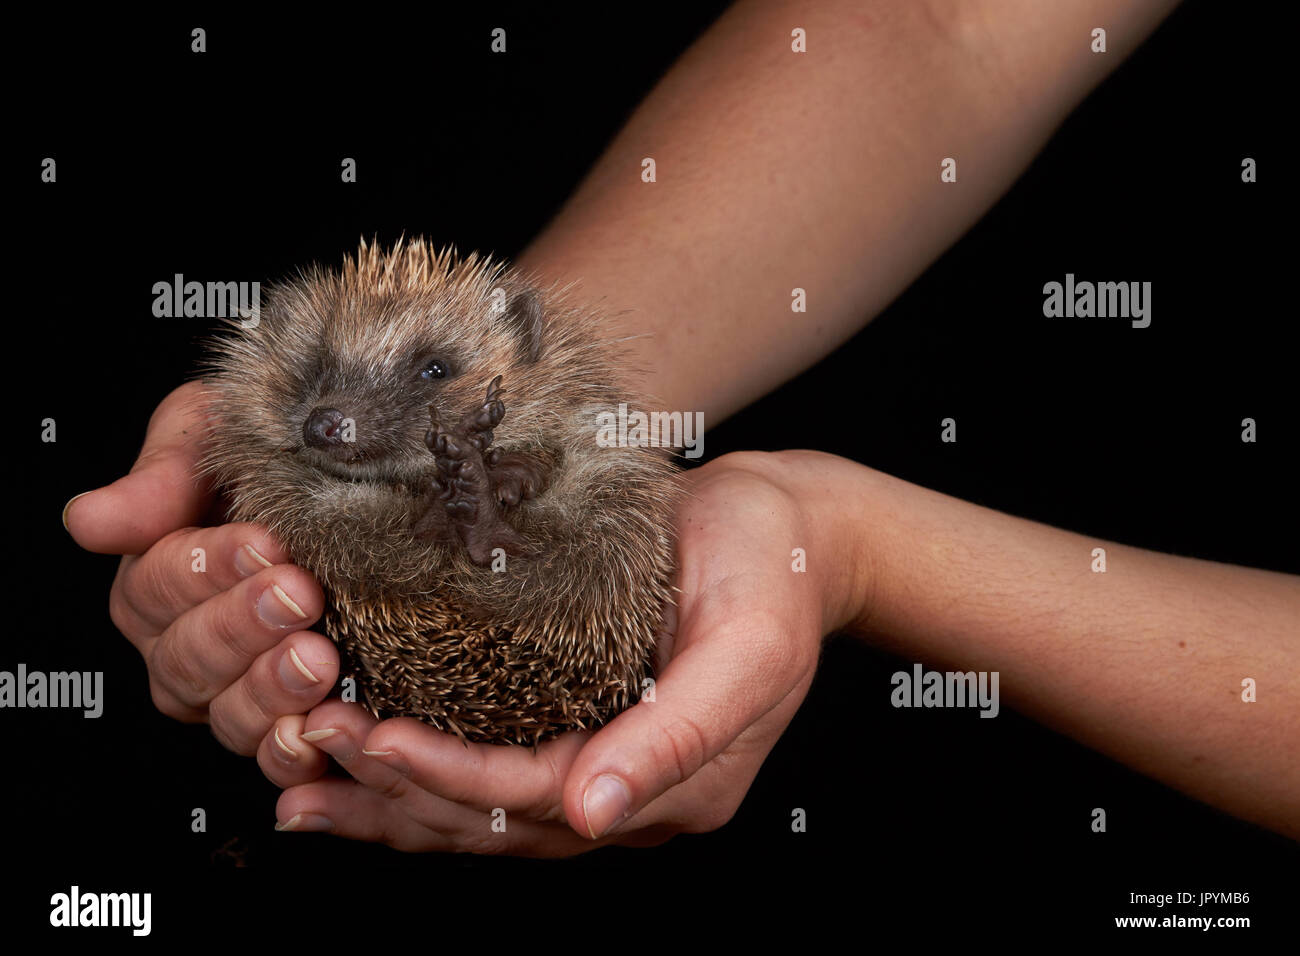 European Hedgehog held in hand on a black background - Stock Image